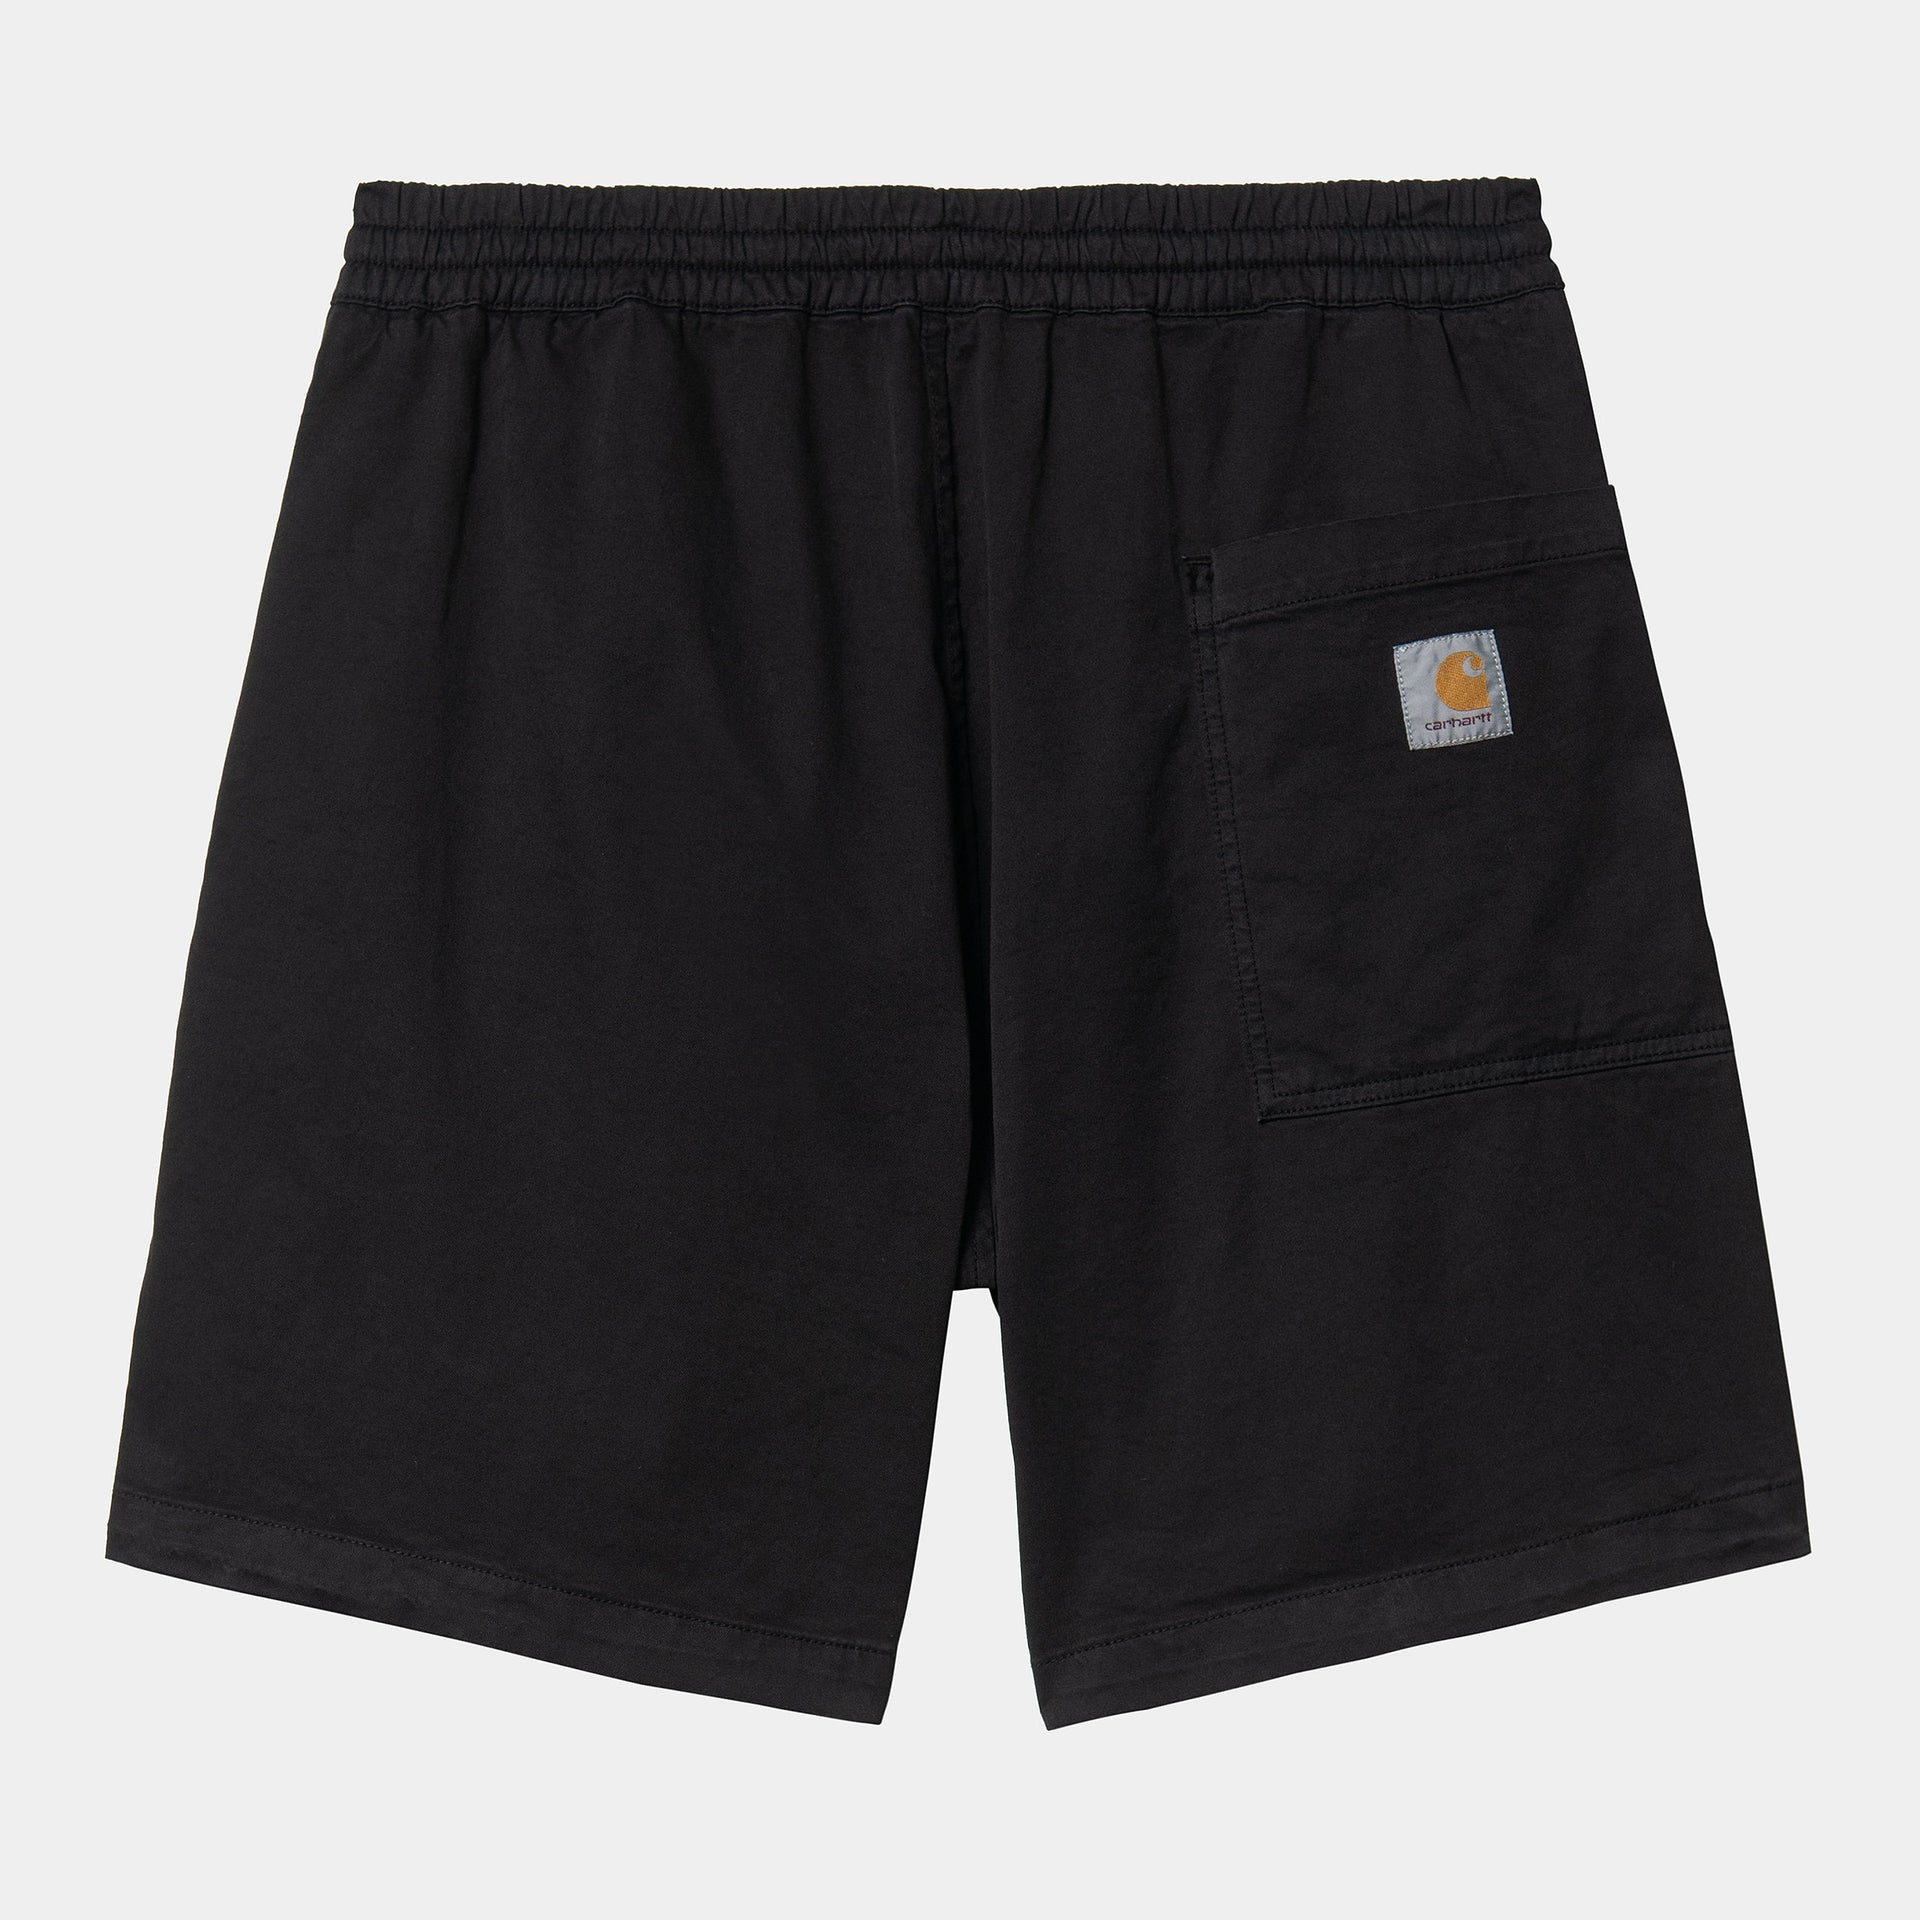 LAWTON SHORT BLACK